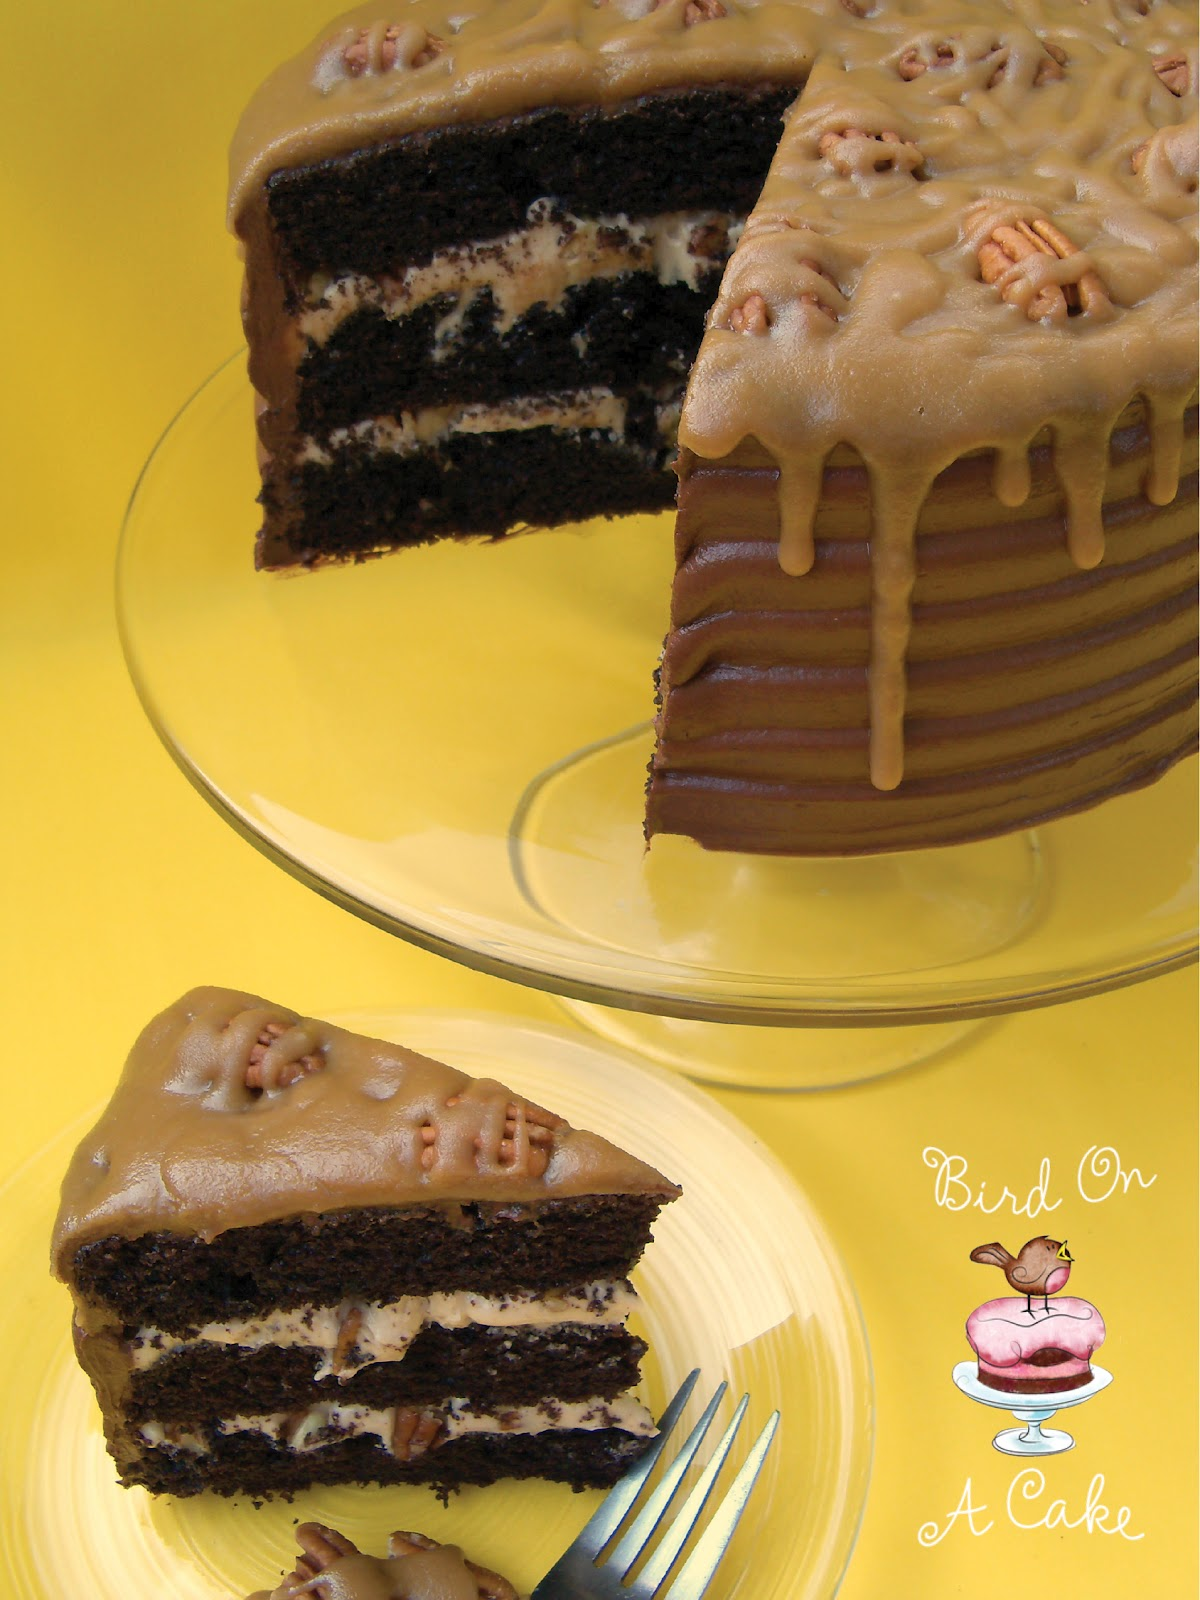 Bird On A Cake: Caramel Pecan Chocolate Cake